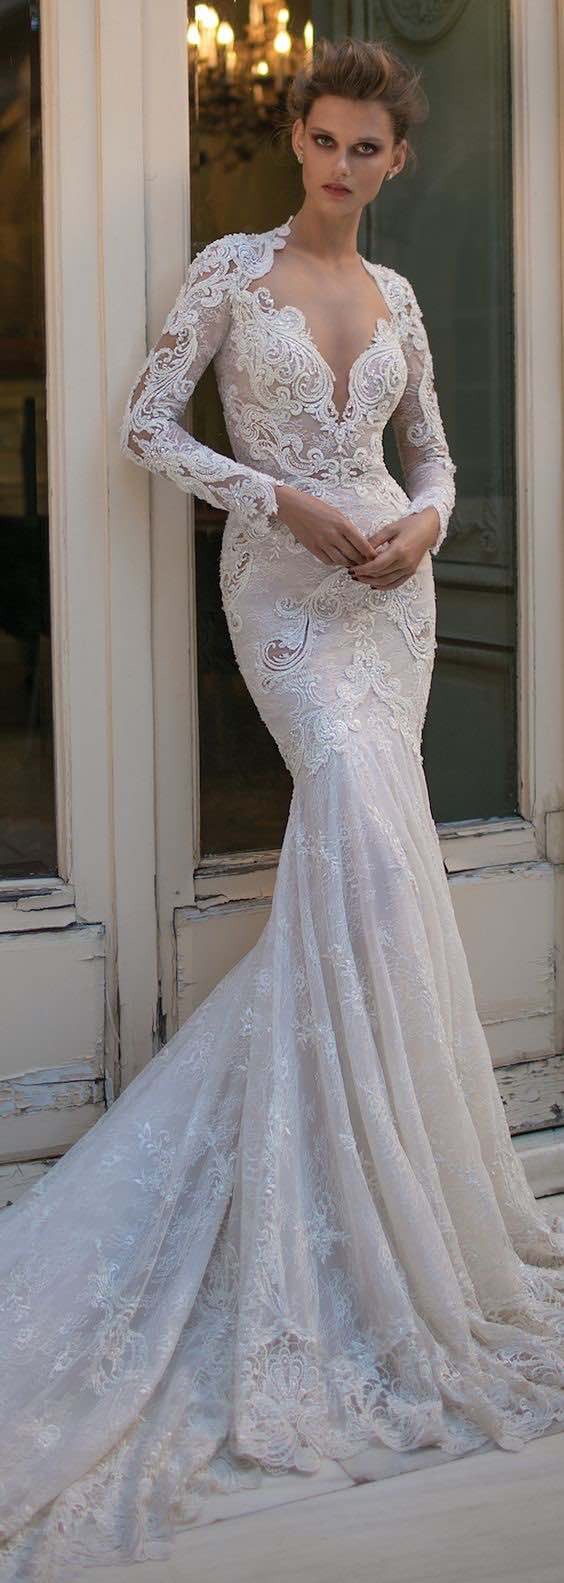 We adore the Berta Bridal Spring 2016 collection. Lace, embroidery and sheer fabrics.